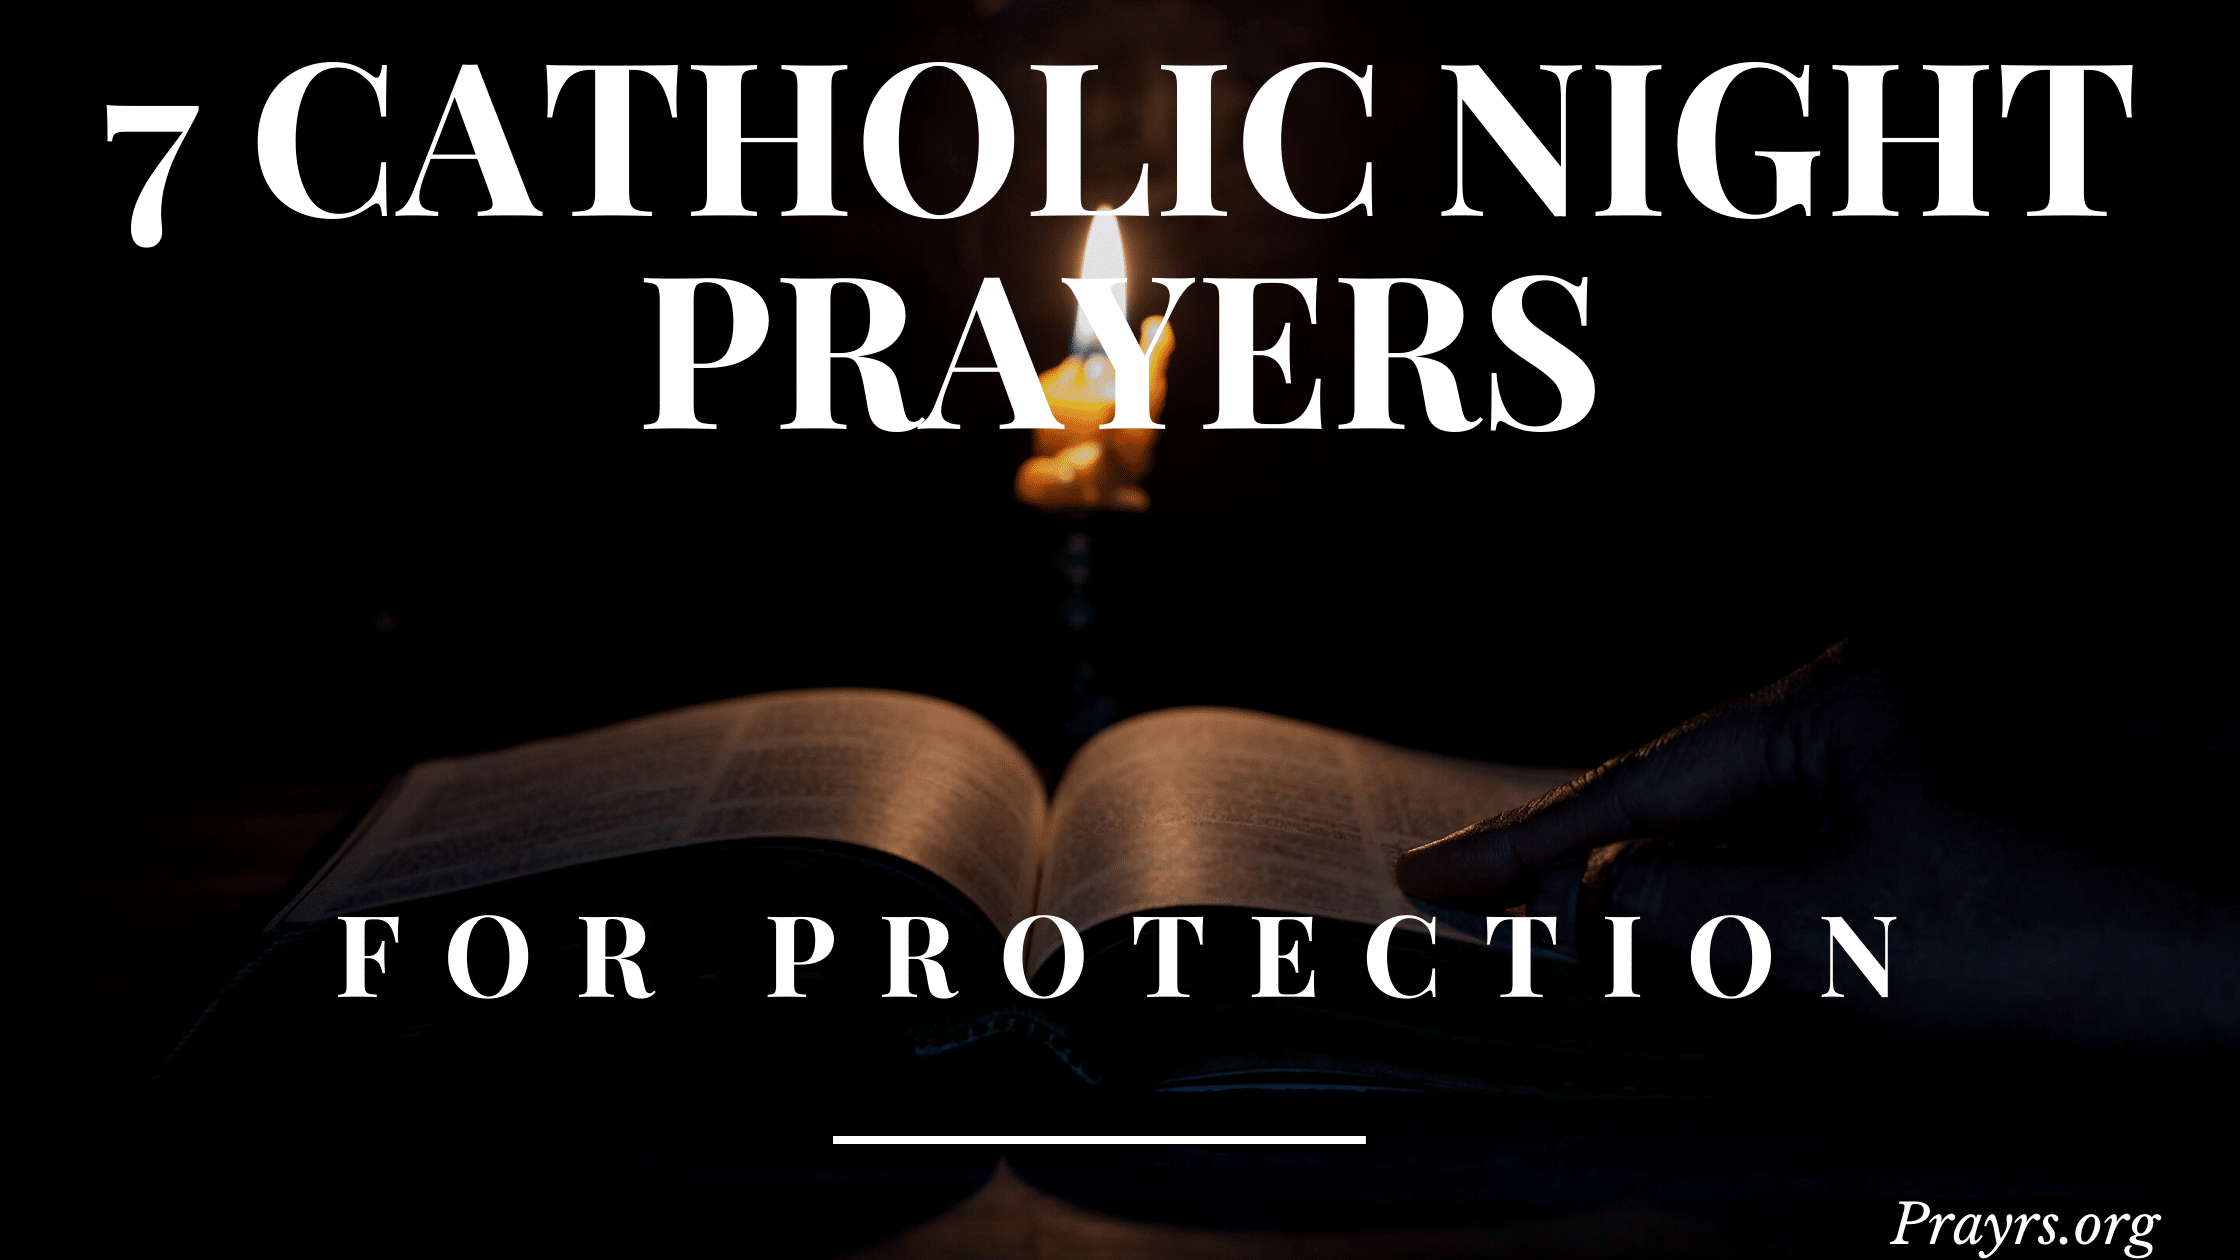 Catholic Night Prayers for Protection